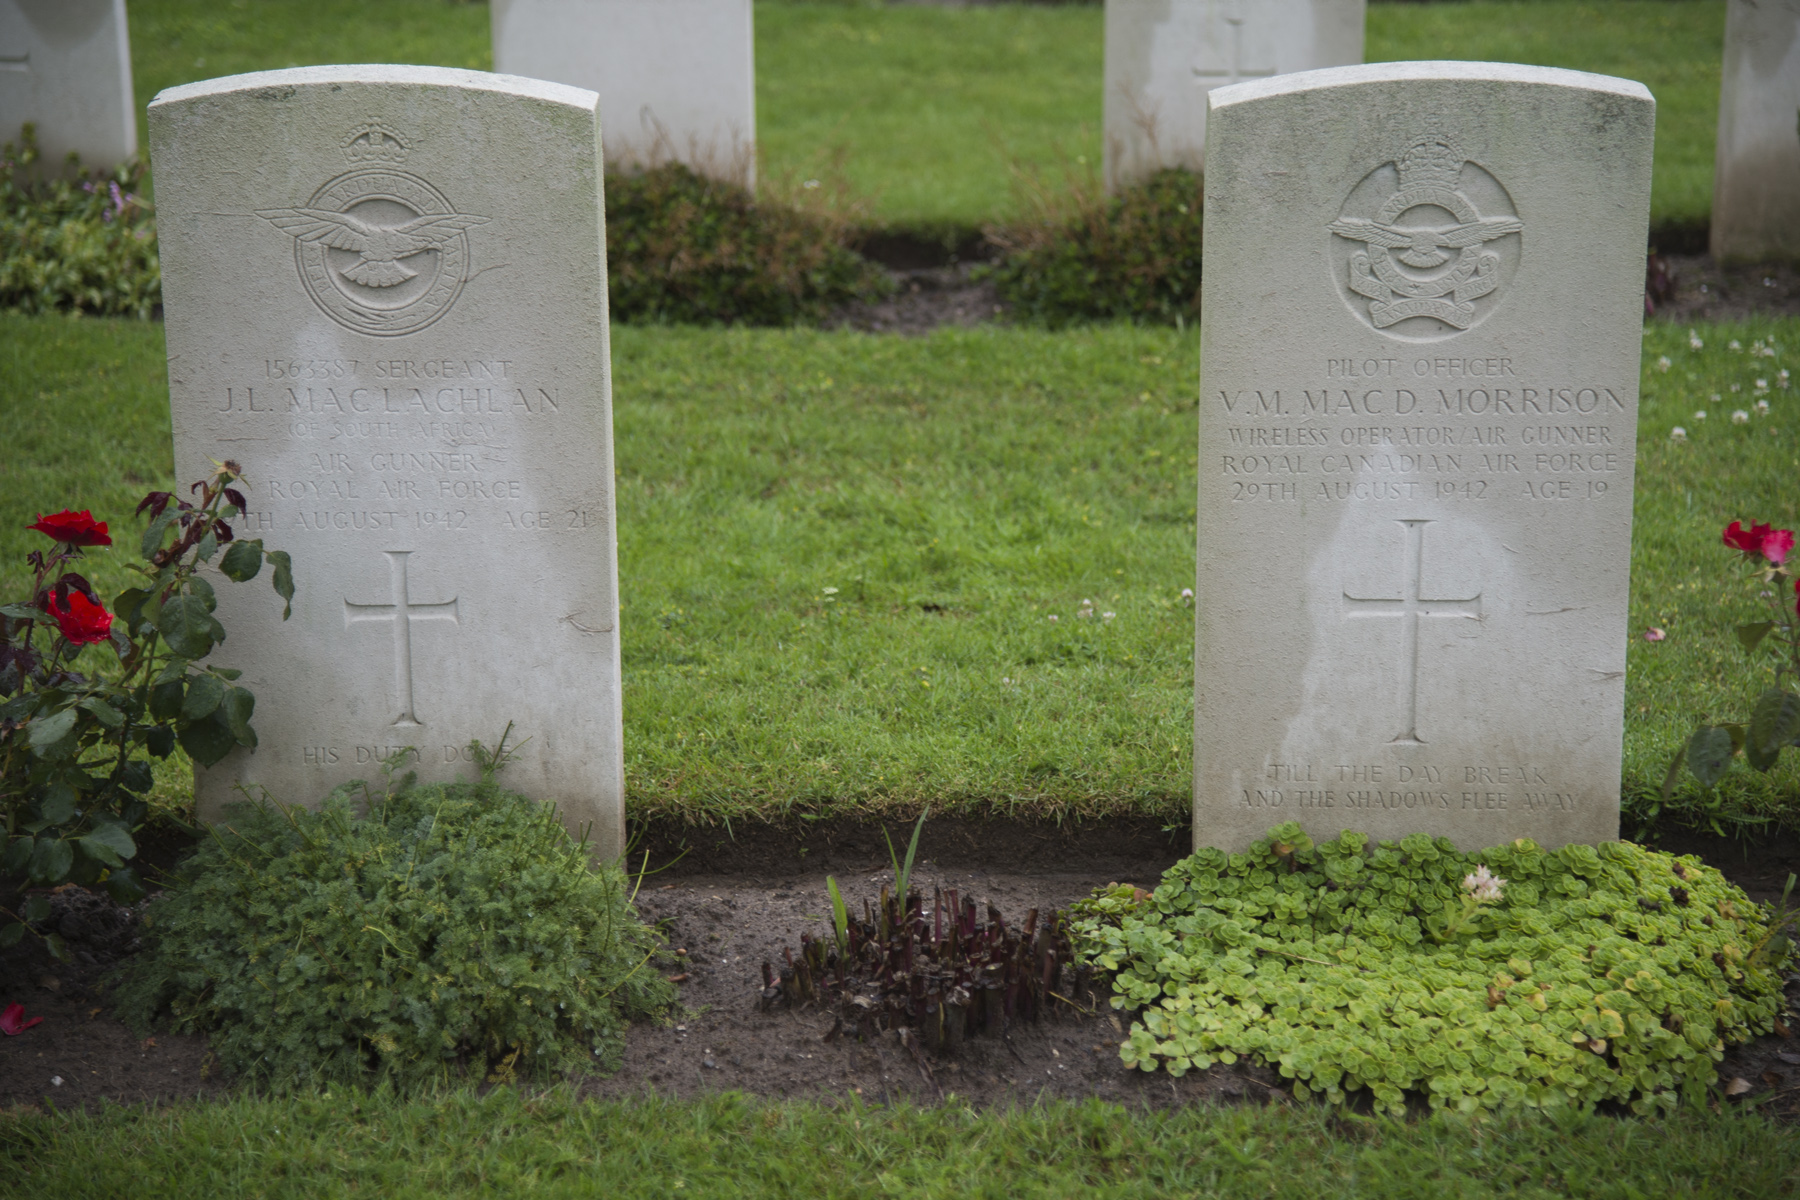 Side by side forever. The grave markers of Sergeant John MacLachlan, a member of the Royal Air Force from South Africa, and Pilot Officer Vincent Merrill MacDonald Morrison, a member of the Royal Canadian Air Force, at Rheinberg Commonwealth War Graves Cemetery in Germany. They were two of four aircrew who died on August 29, 1942, when their RAF Halifax bomber was shot down. The remains of a third deceased crew member, Flight Sergeant John Joseph Carey, were recovered and laid to rest with military honours on July 9, 2014.  PHOTO: Corporal Pamela Turney, GN2014-0384-001